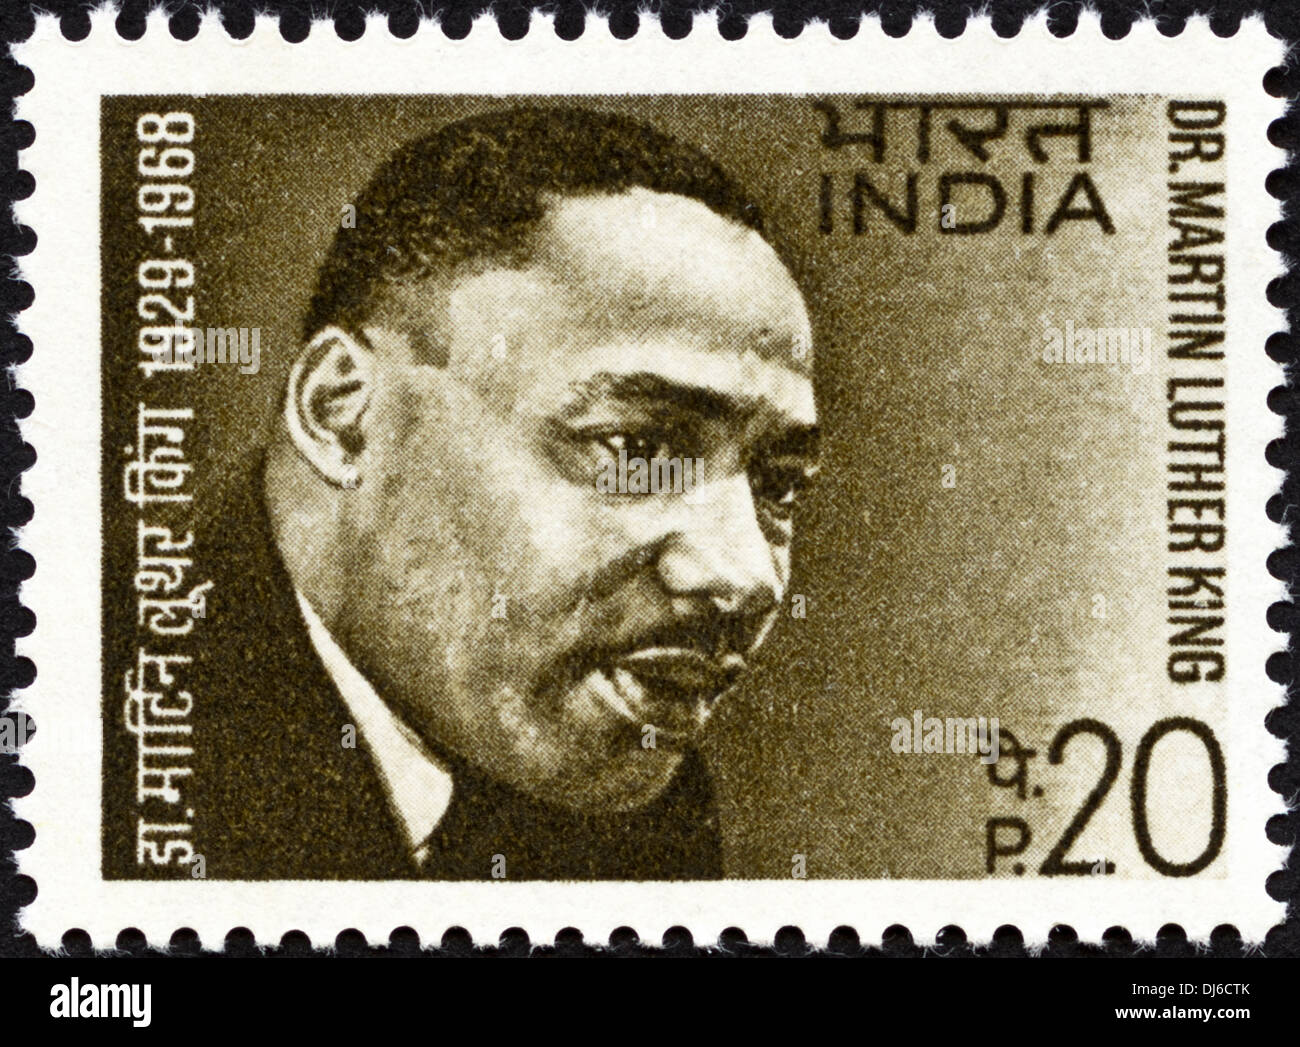 postage stamp India featuring Dr Martin Luther King 1929 - 1968 dated 1969 - Stock Image